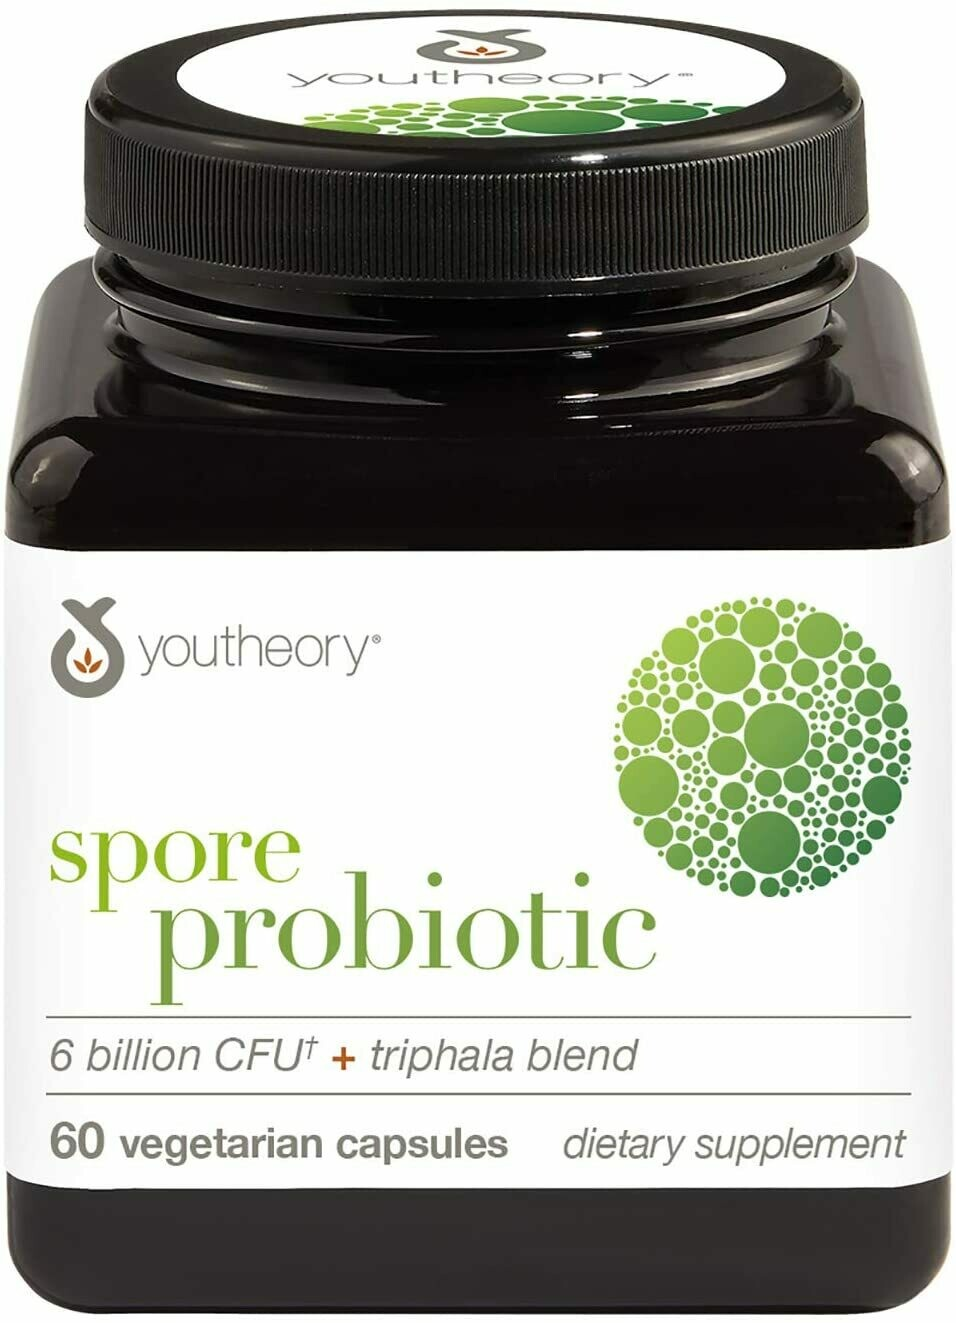 Youtheory Spore Probiotic with Triphala blend, 60 Vegetarian Capsules